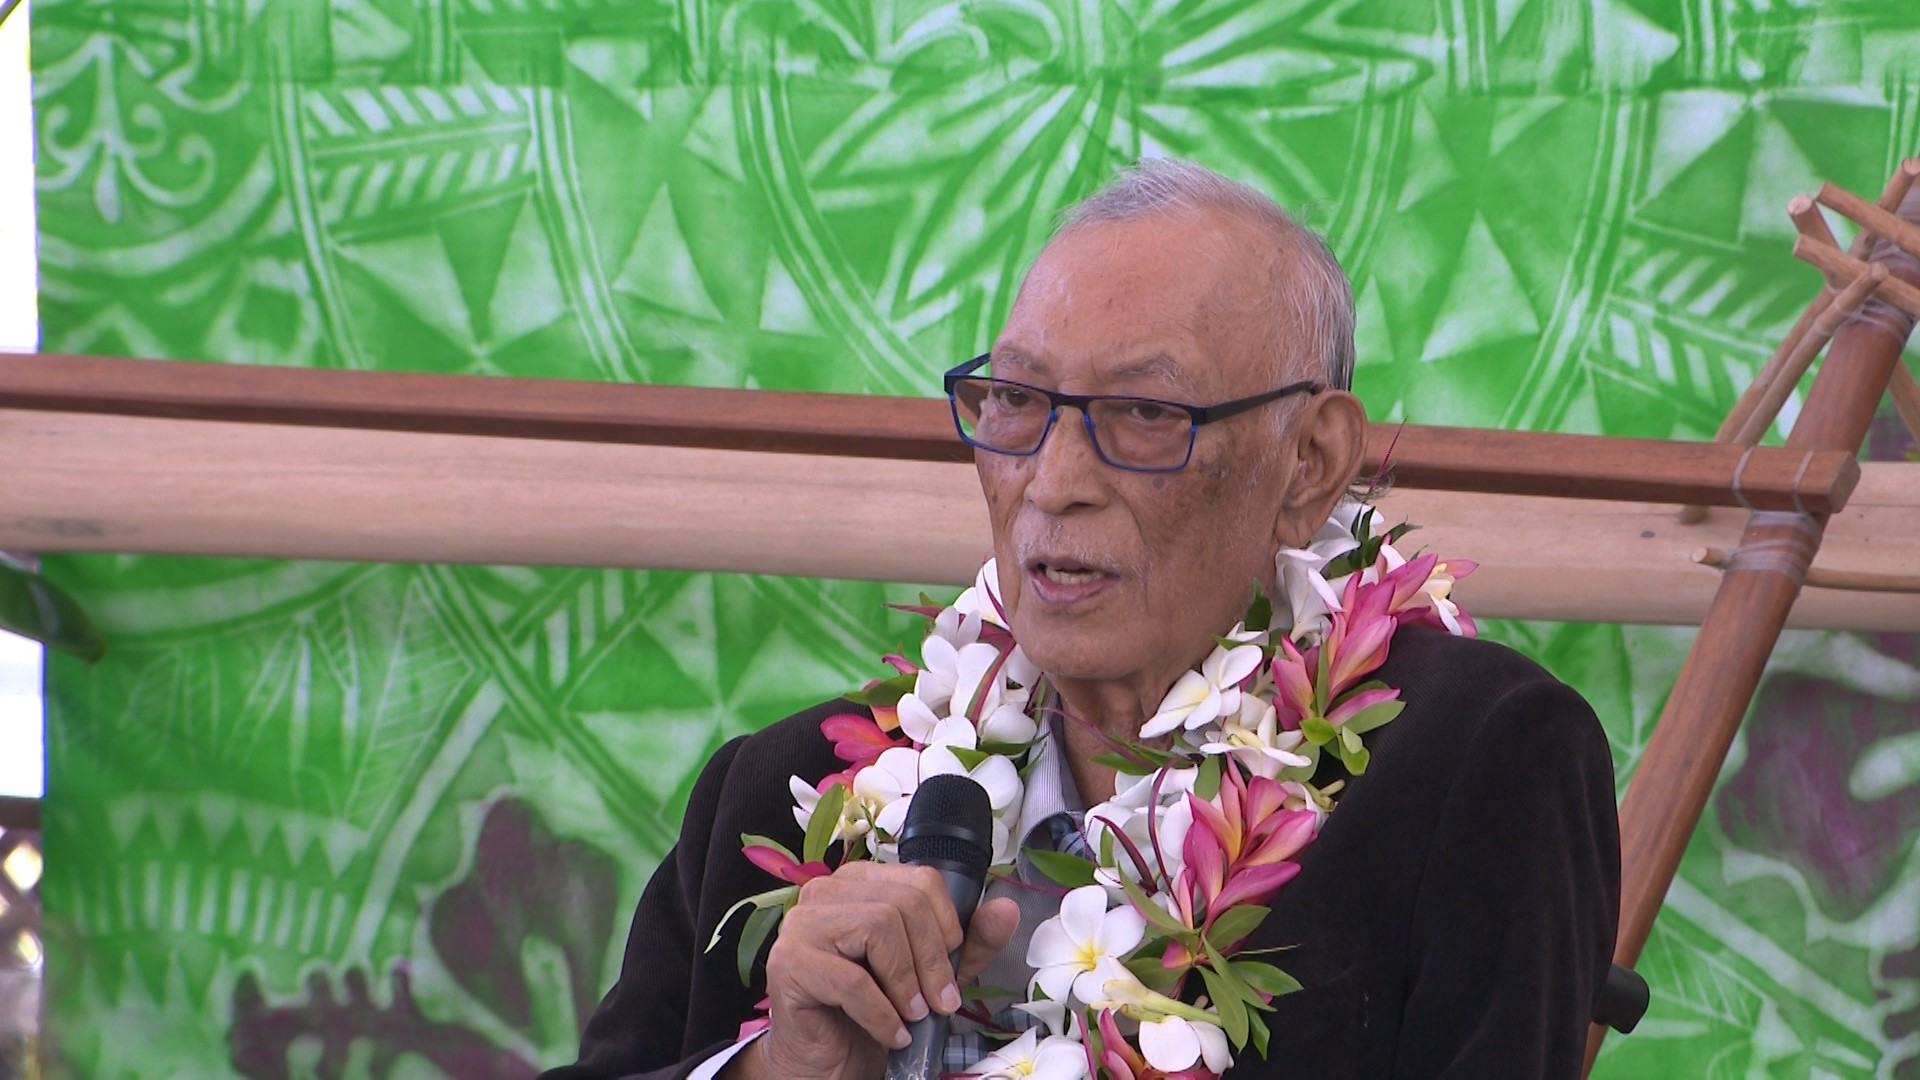 The Premier Sir Toke Talagi has publicly expressed his intentions of contesting the 2020 General Election.  While speaking at the launch of his book this morning at the Fale fono, Sir…